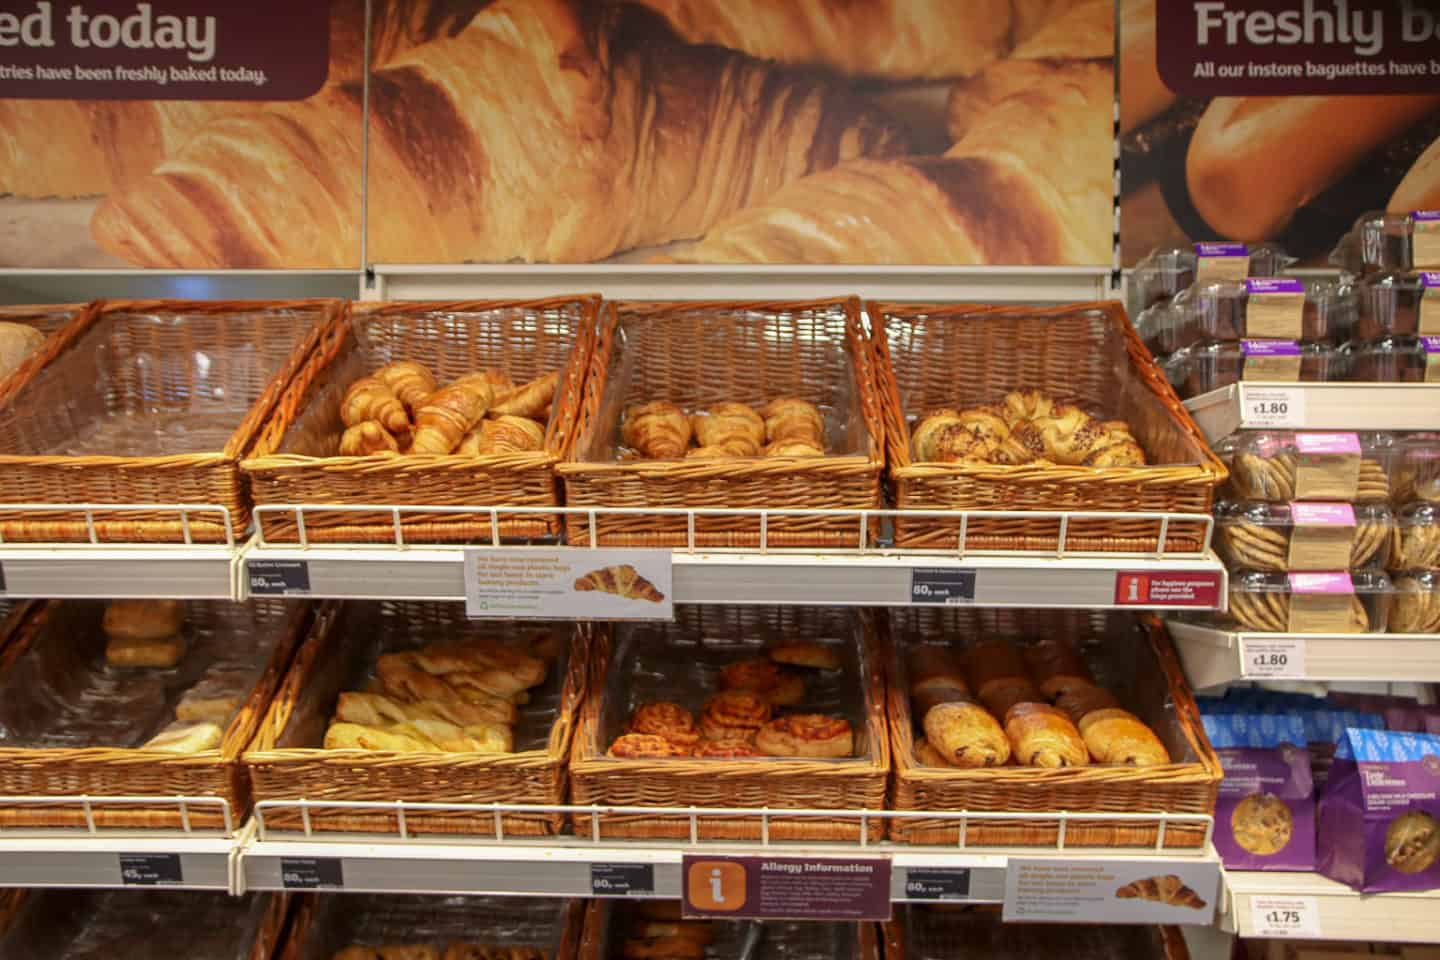 Fresh bread section in Tesco, a London grocery store